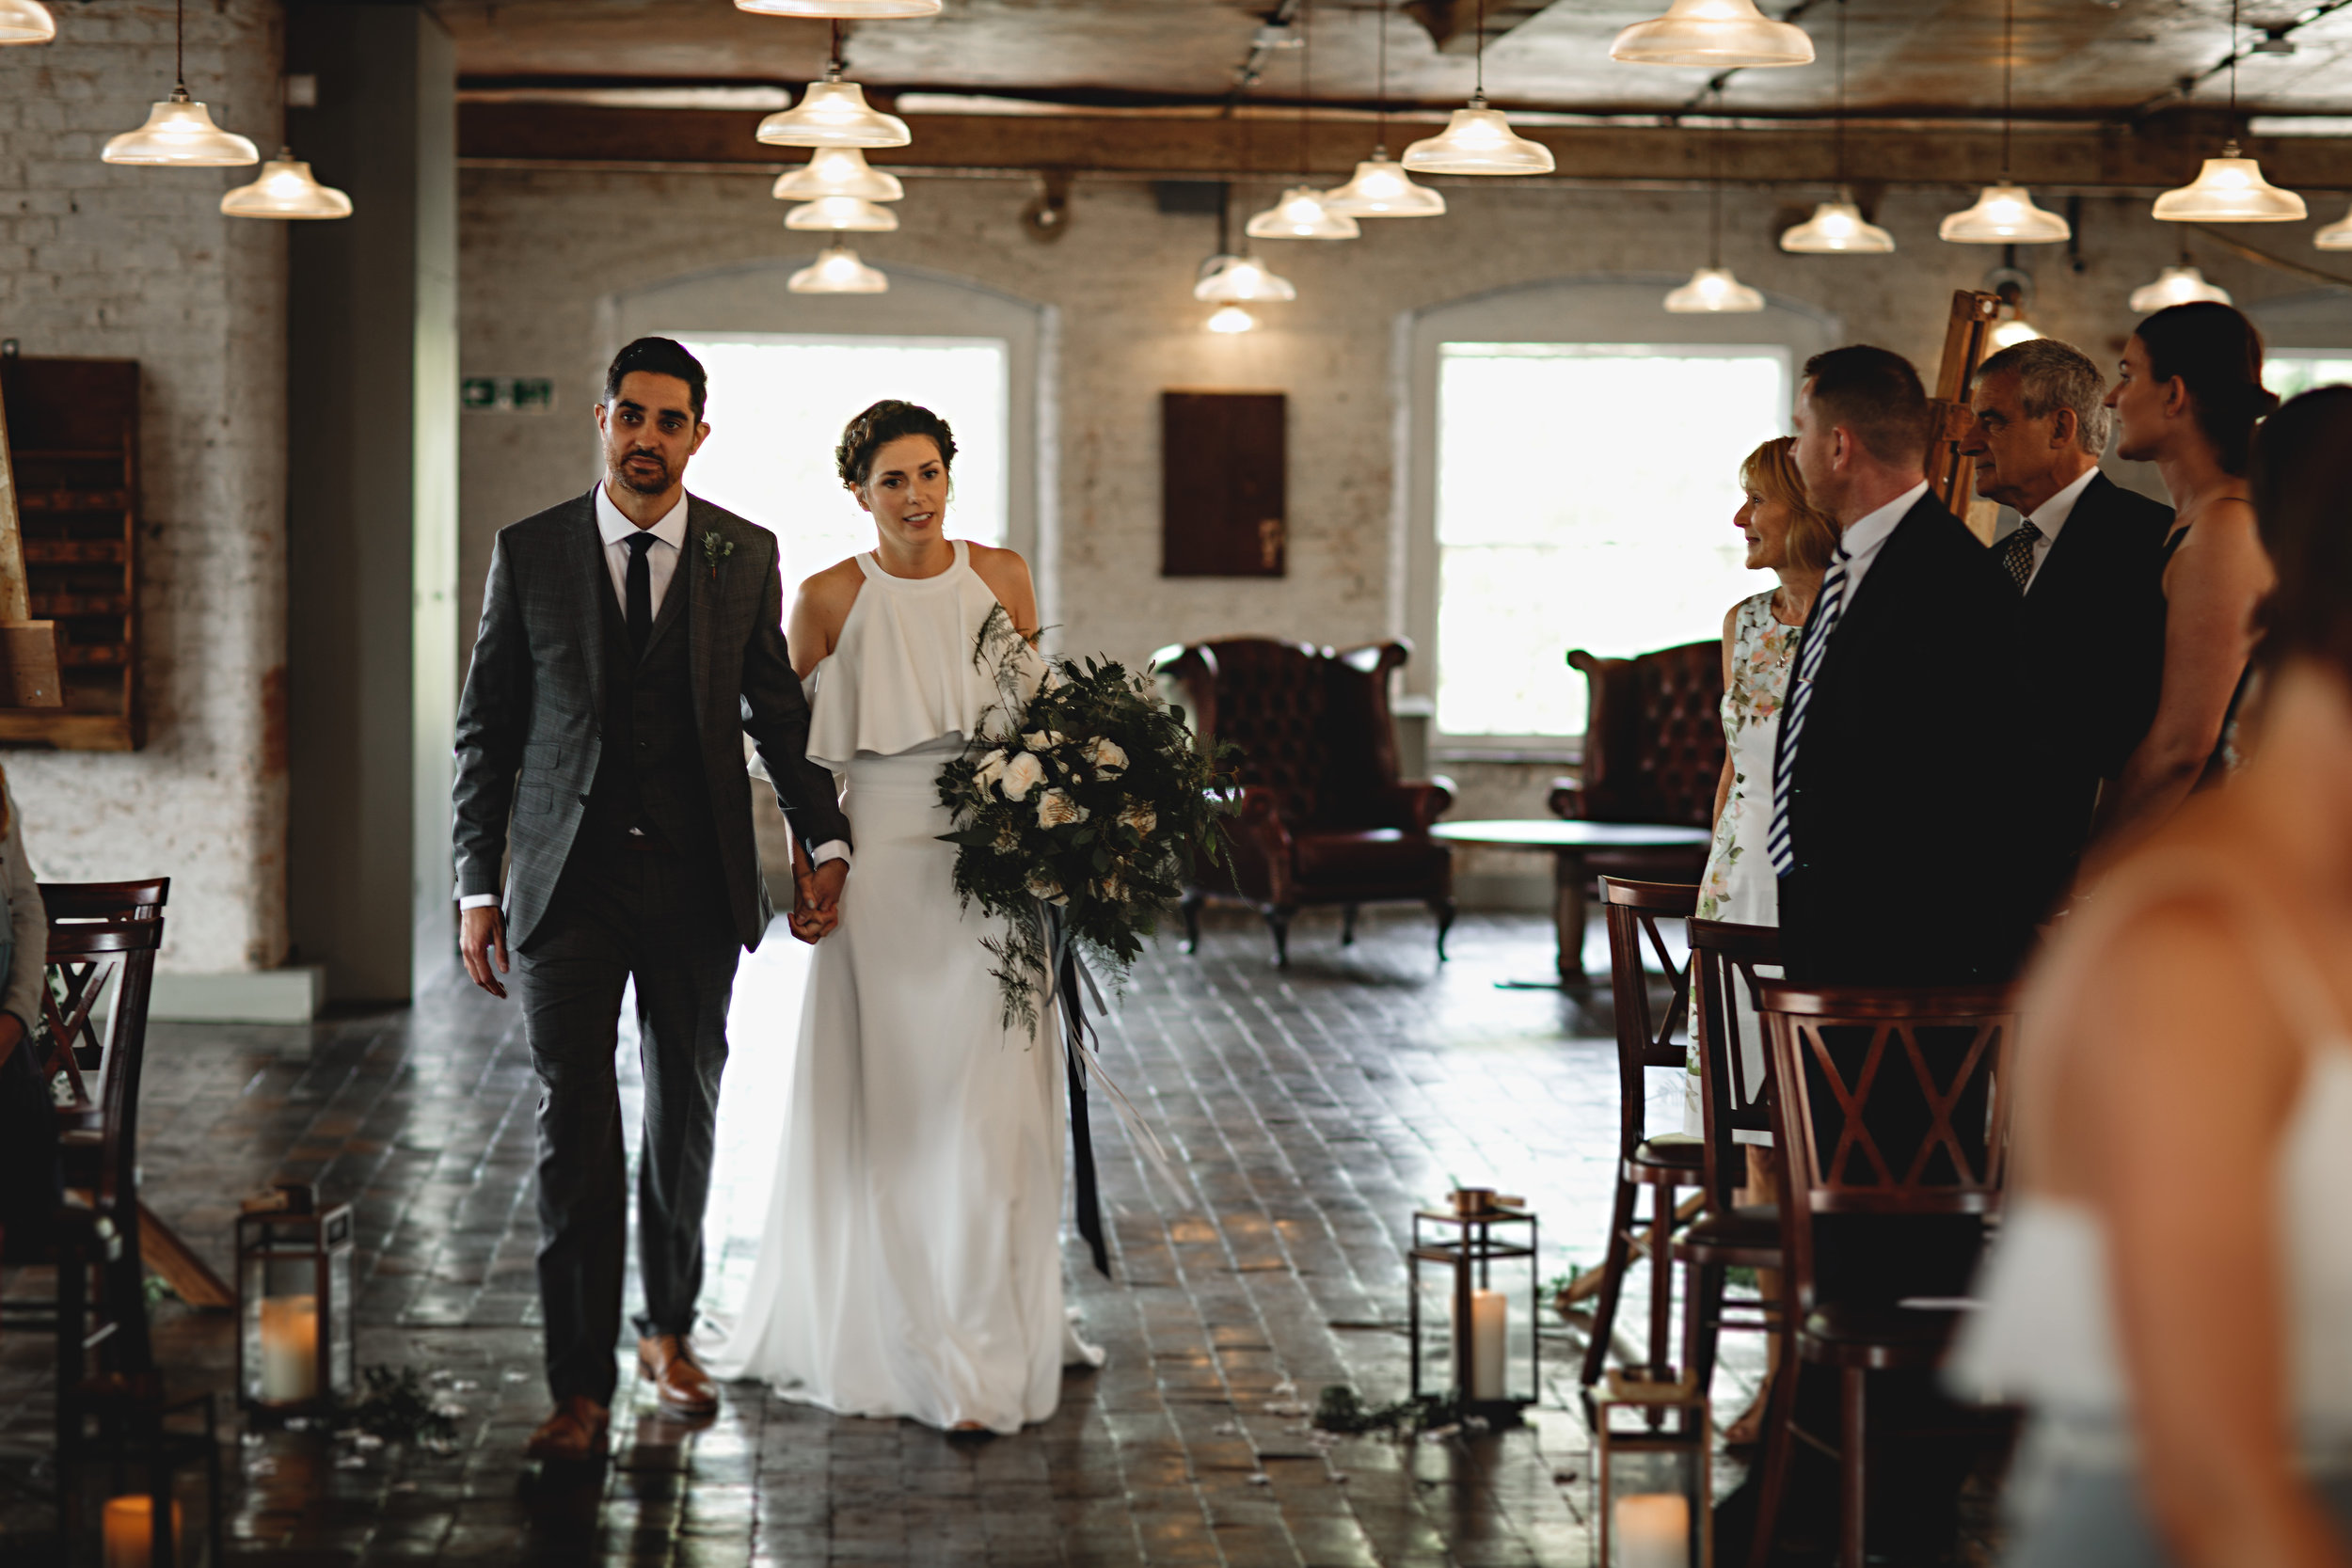 Jesus Peiro For A Chic And Modern Industrial Wedding At The West Mill 11.jpg